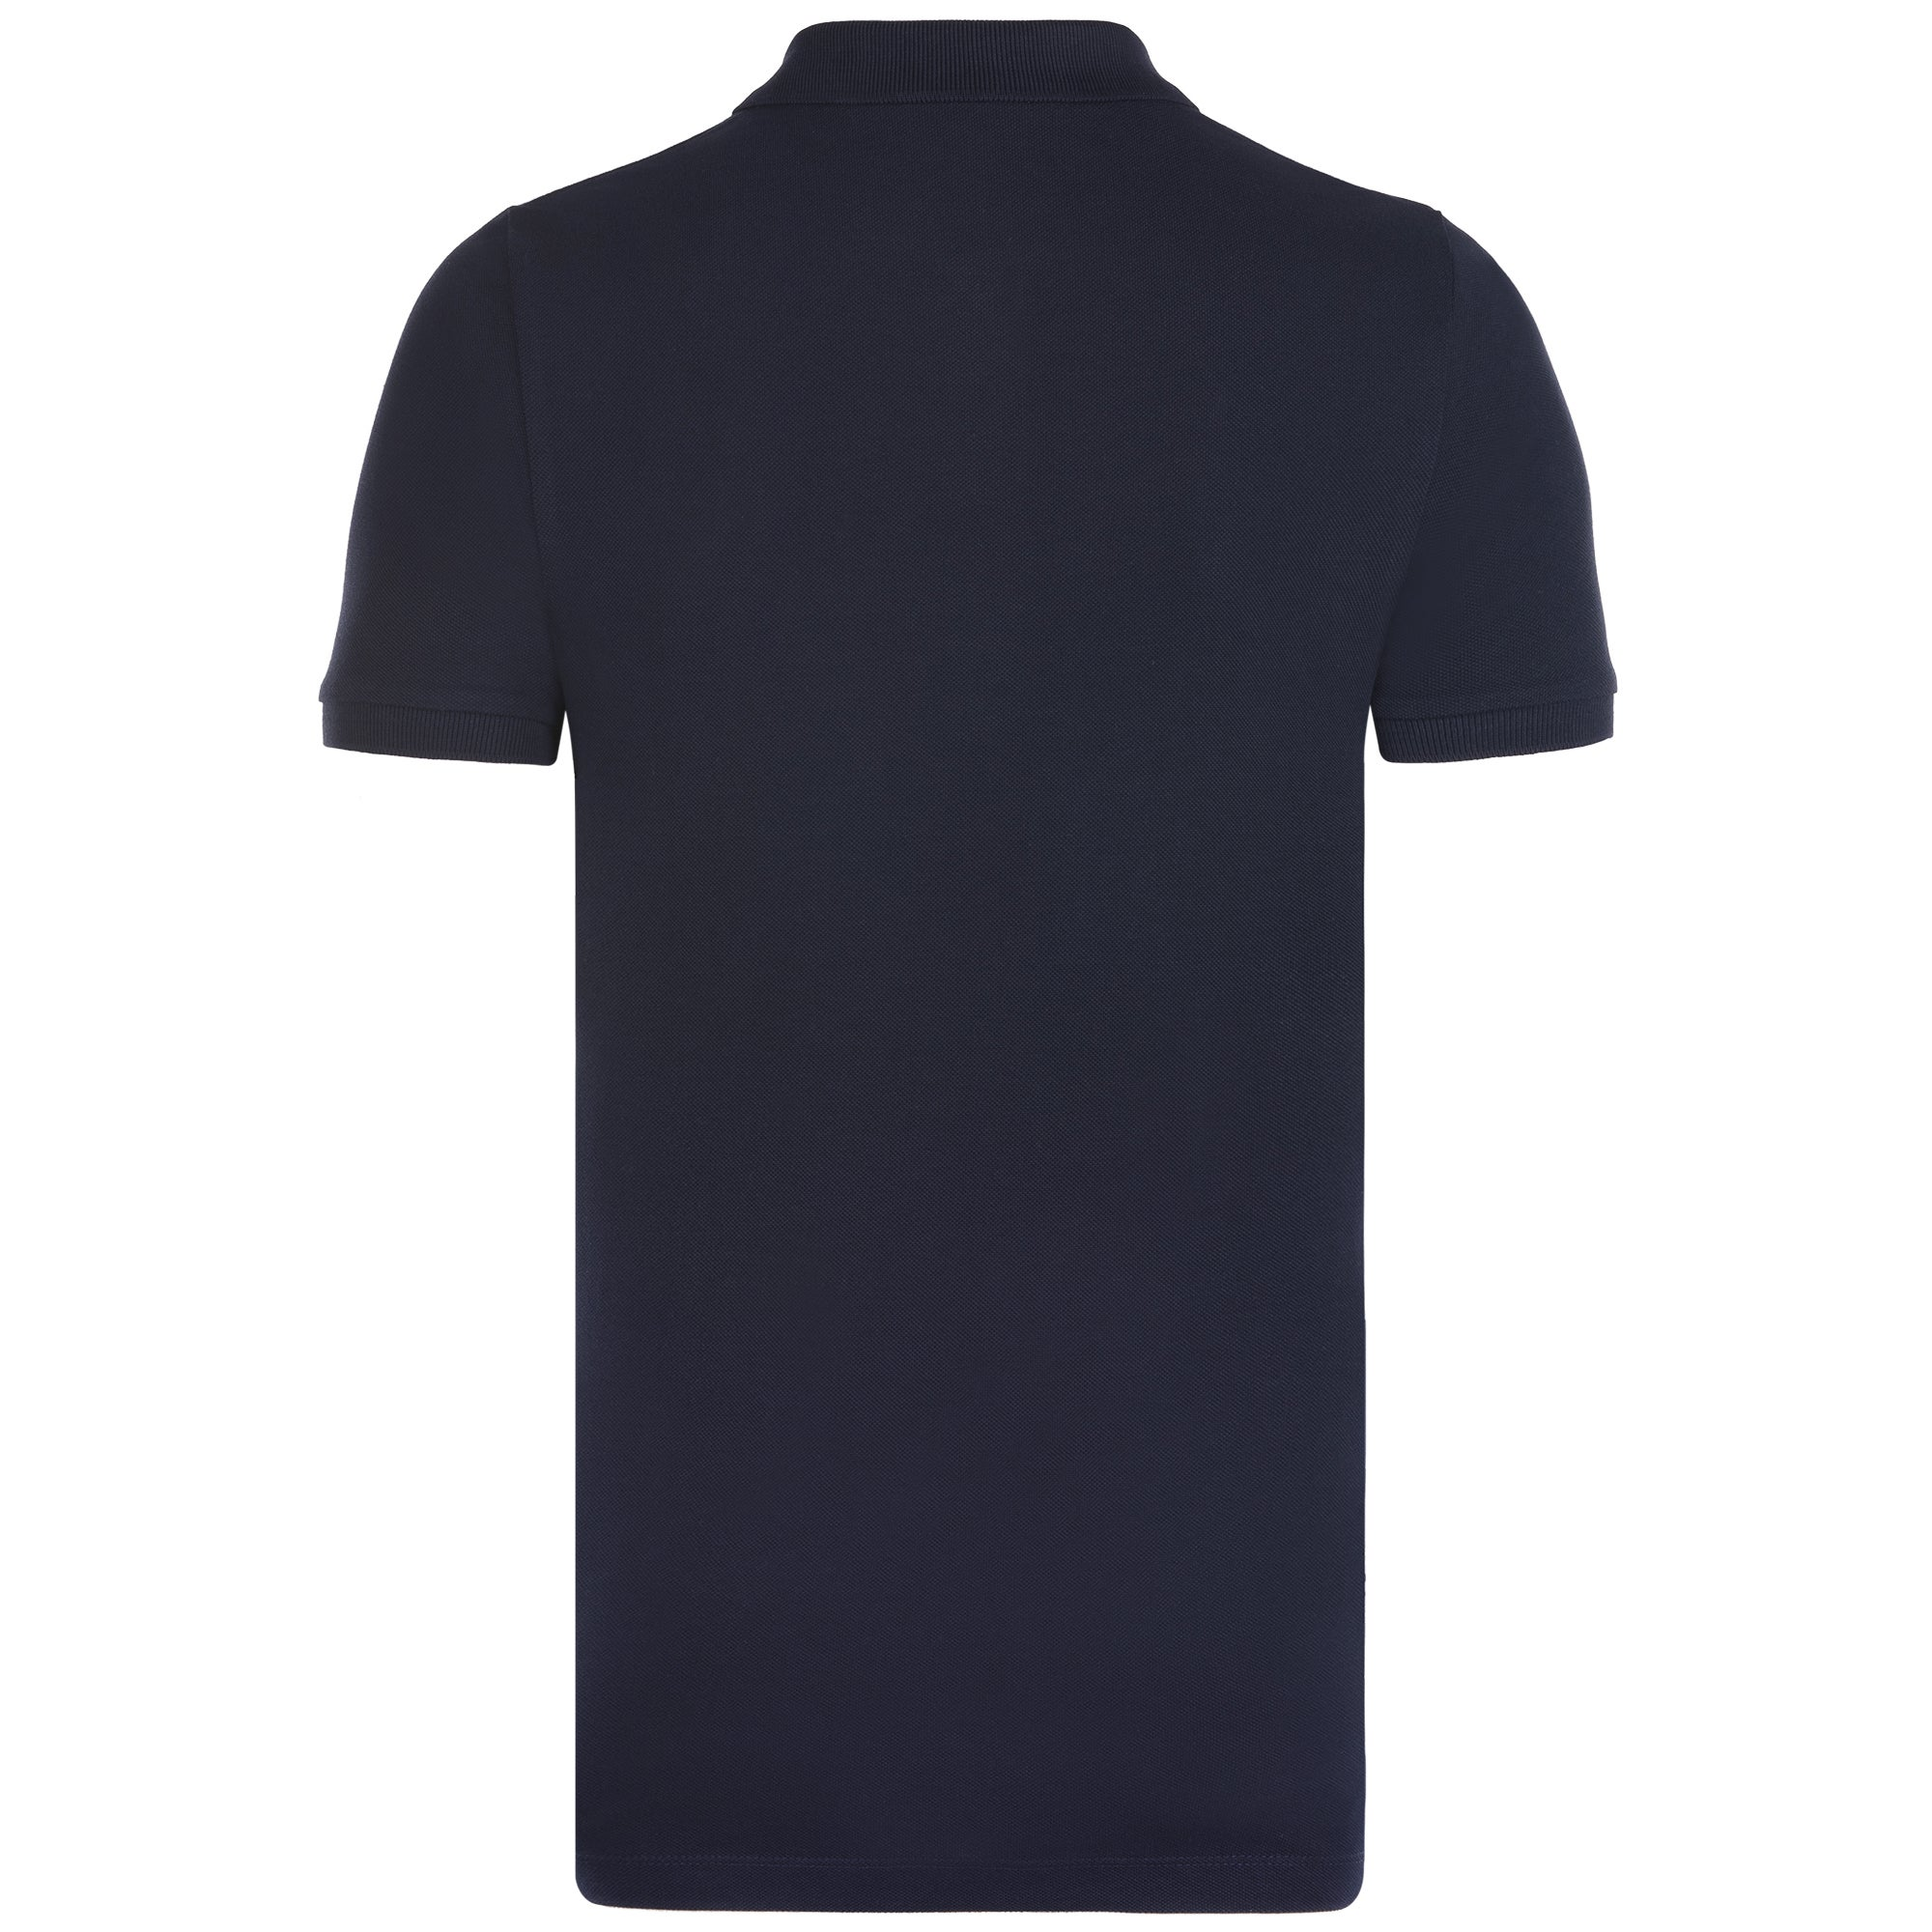 98d9f348522 Shop Burberry Men s Navy Blue Cotton Short-sleeve Polo Shirt - Free  Shipping Today - Overstock - 13780273